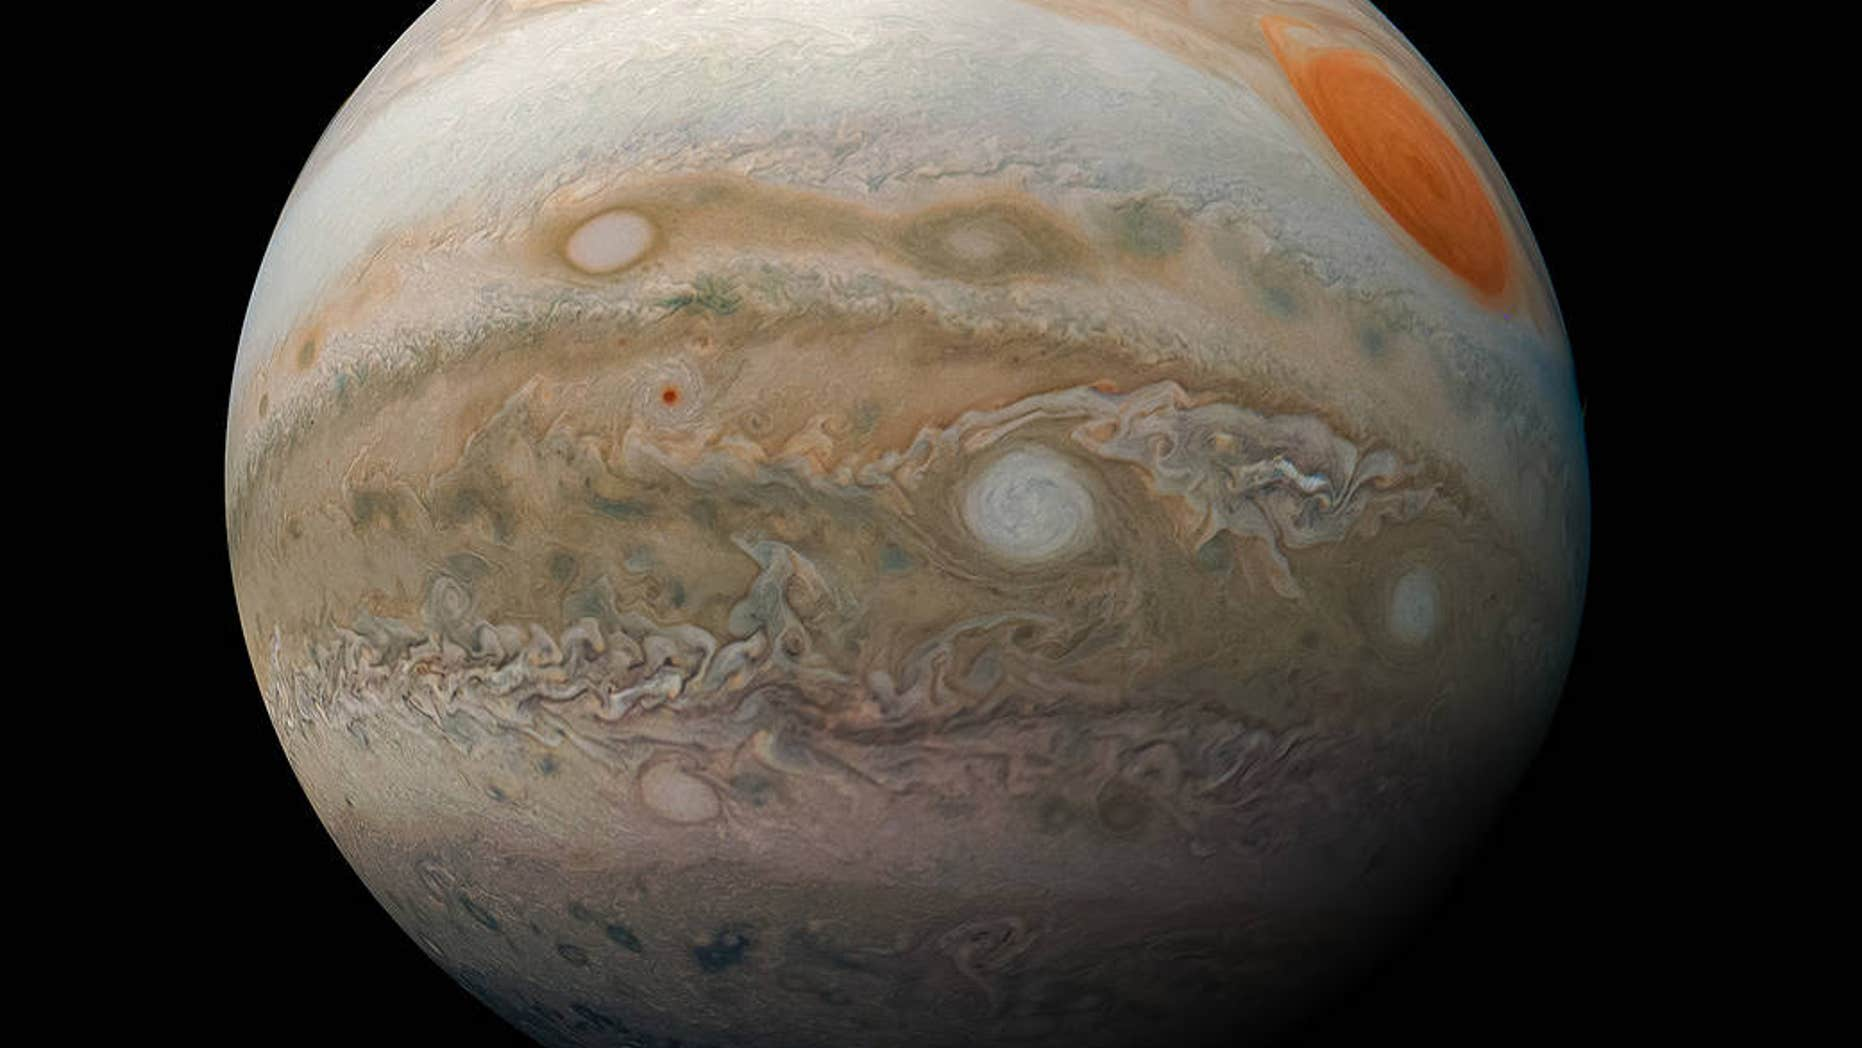 The image shows Jupiter's Great Red Spot and storms in the gas giant's southern hemisphere. (NASA/JPL-Caltech/SwRI/MSSS/Kevin M. Gill)